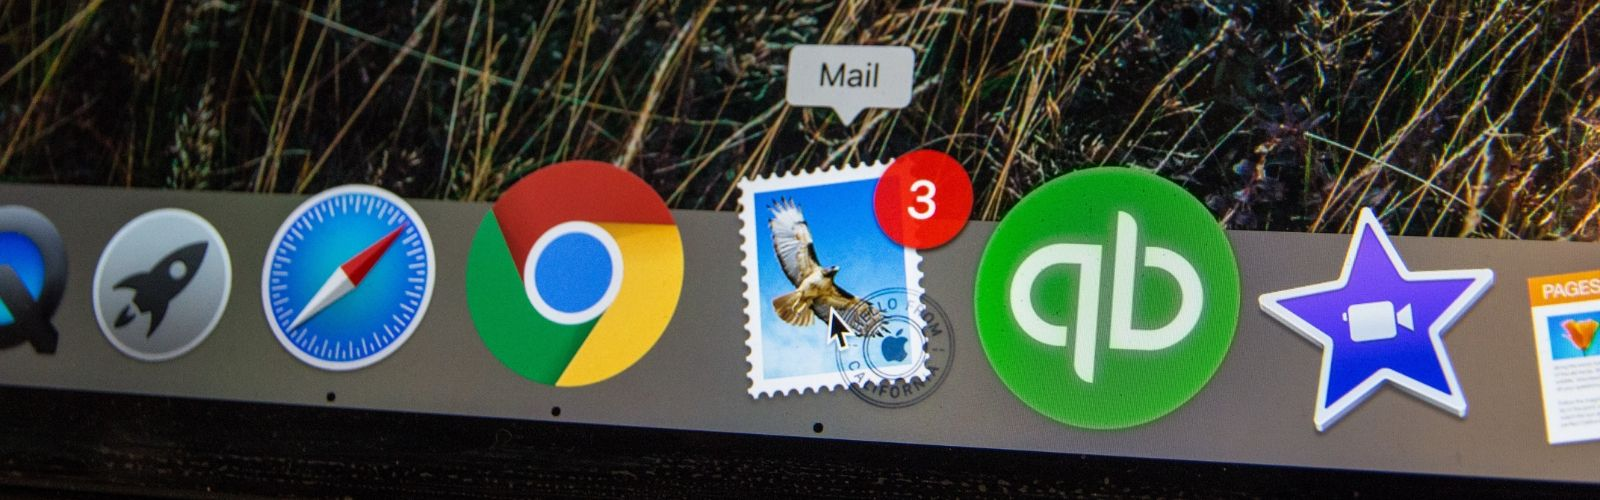 iMac bottom menu bar focused on mail program